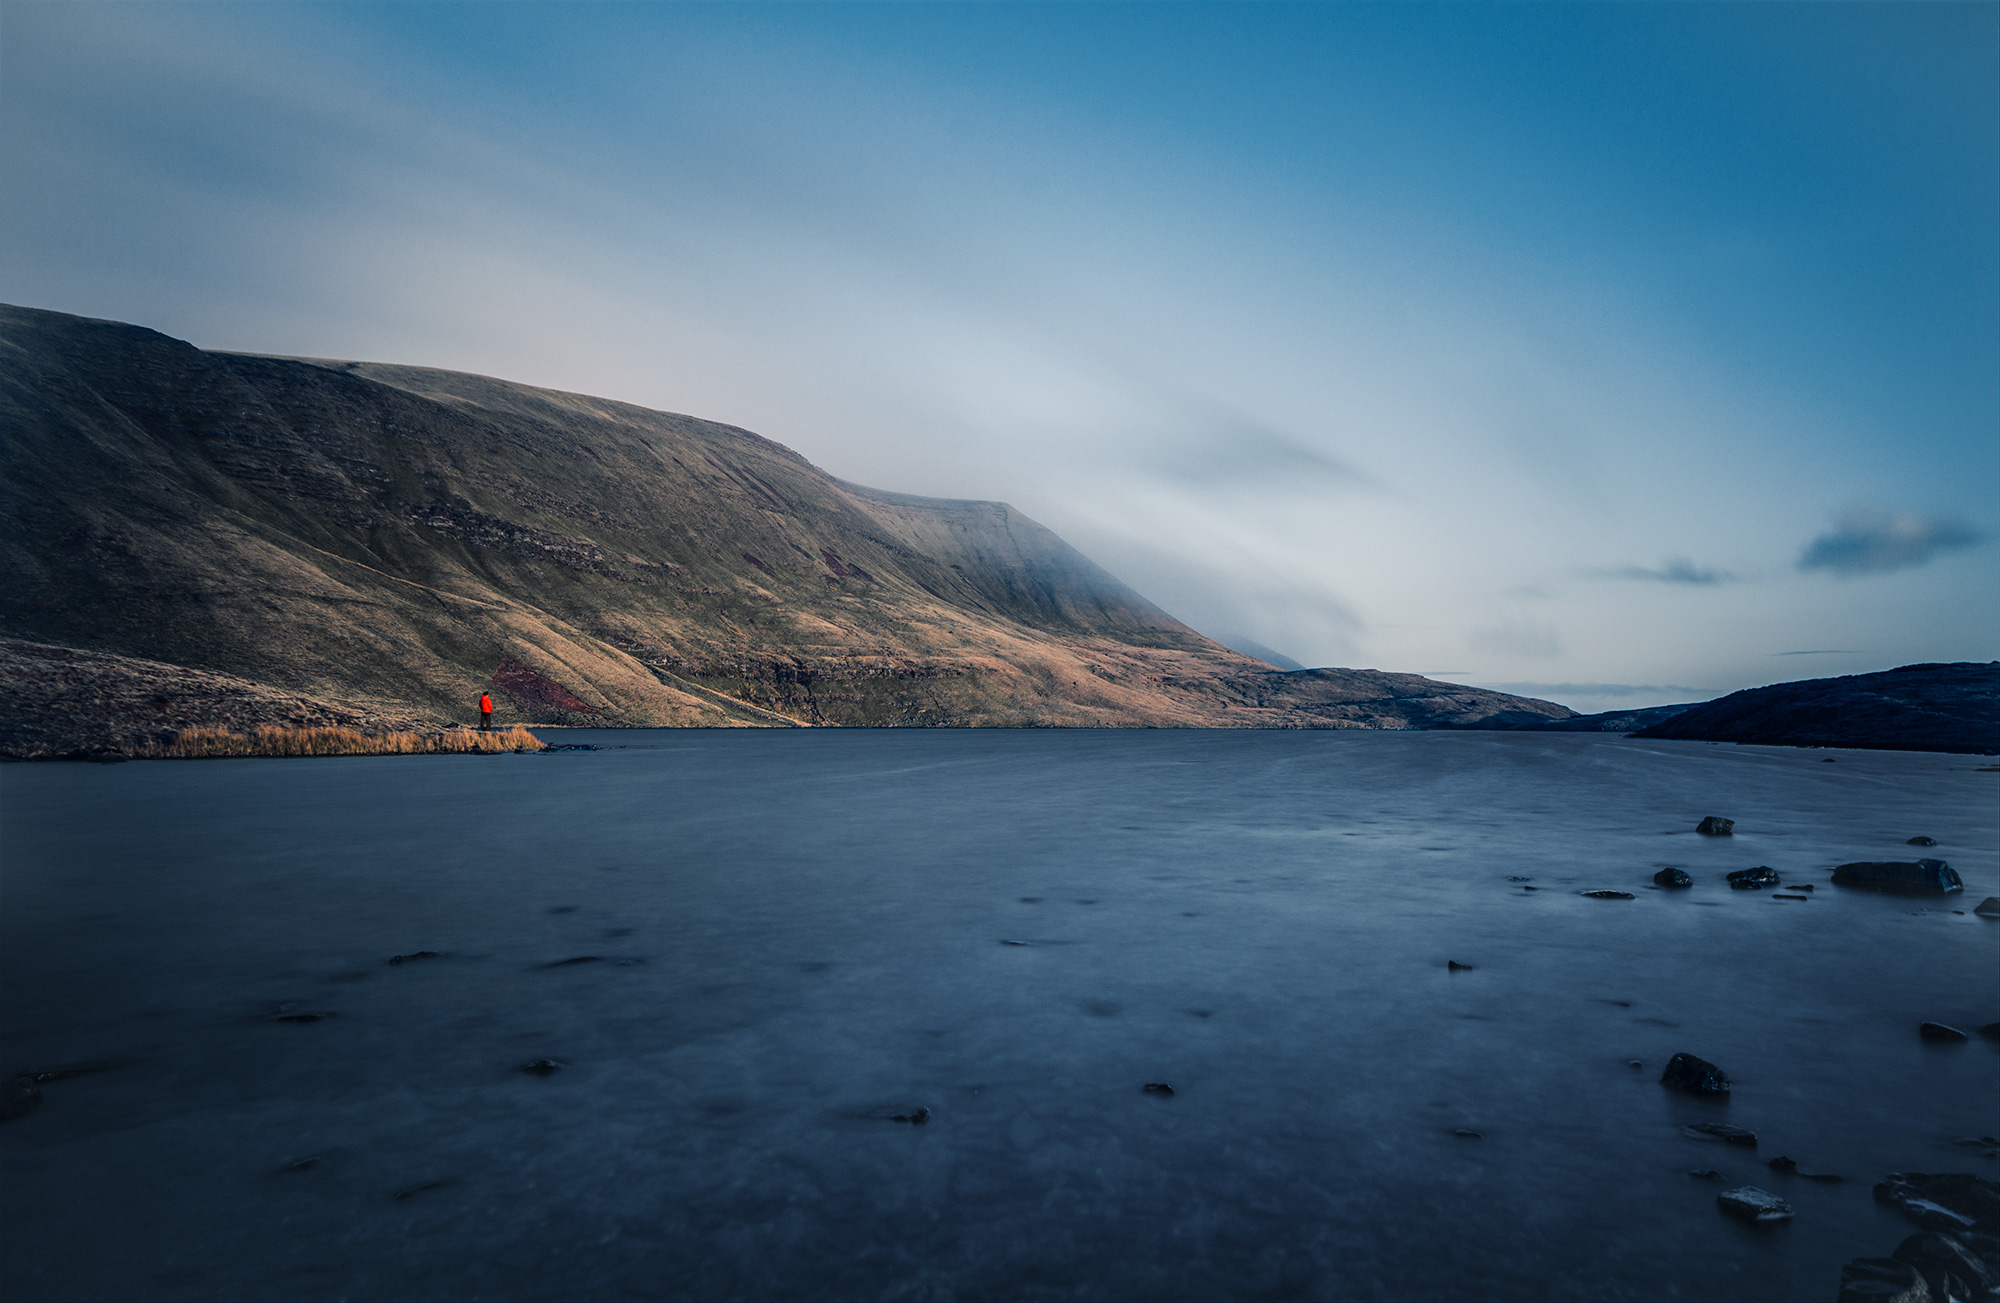 Early Morning at Llyn y Fan Fawr, The Brecon Beacons